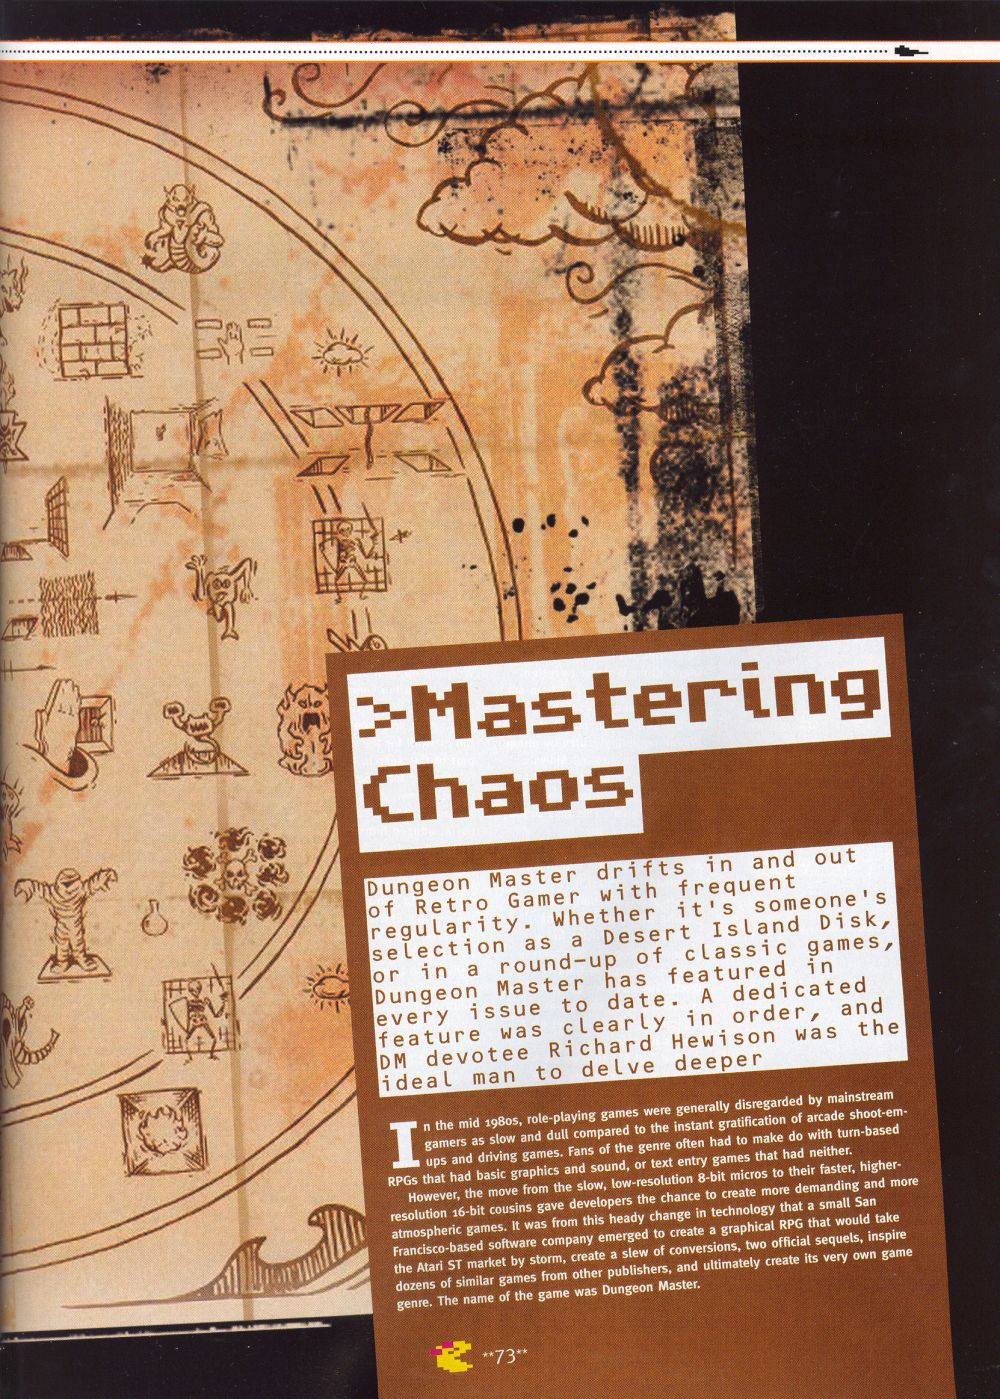 An article titled 'Mastering Chaos', printed in issue 10 of 'Retro Gamer' and written by Richard Hewison Page 02